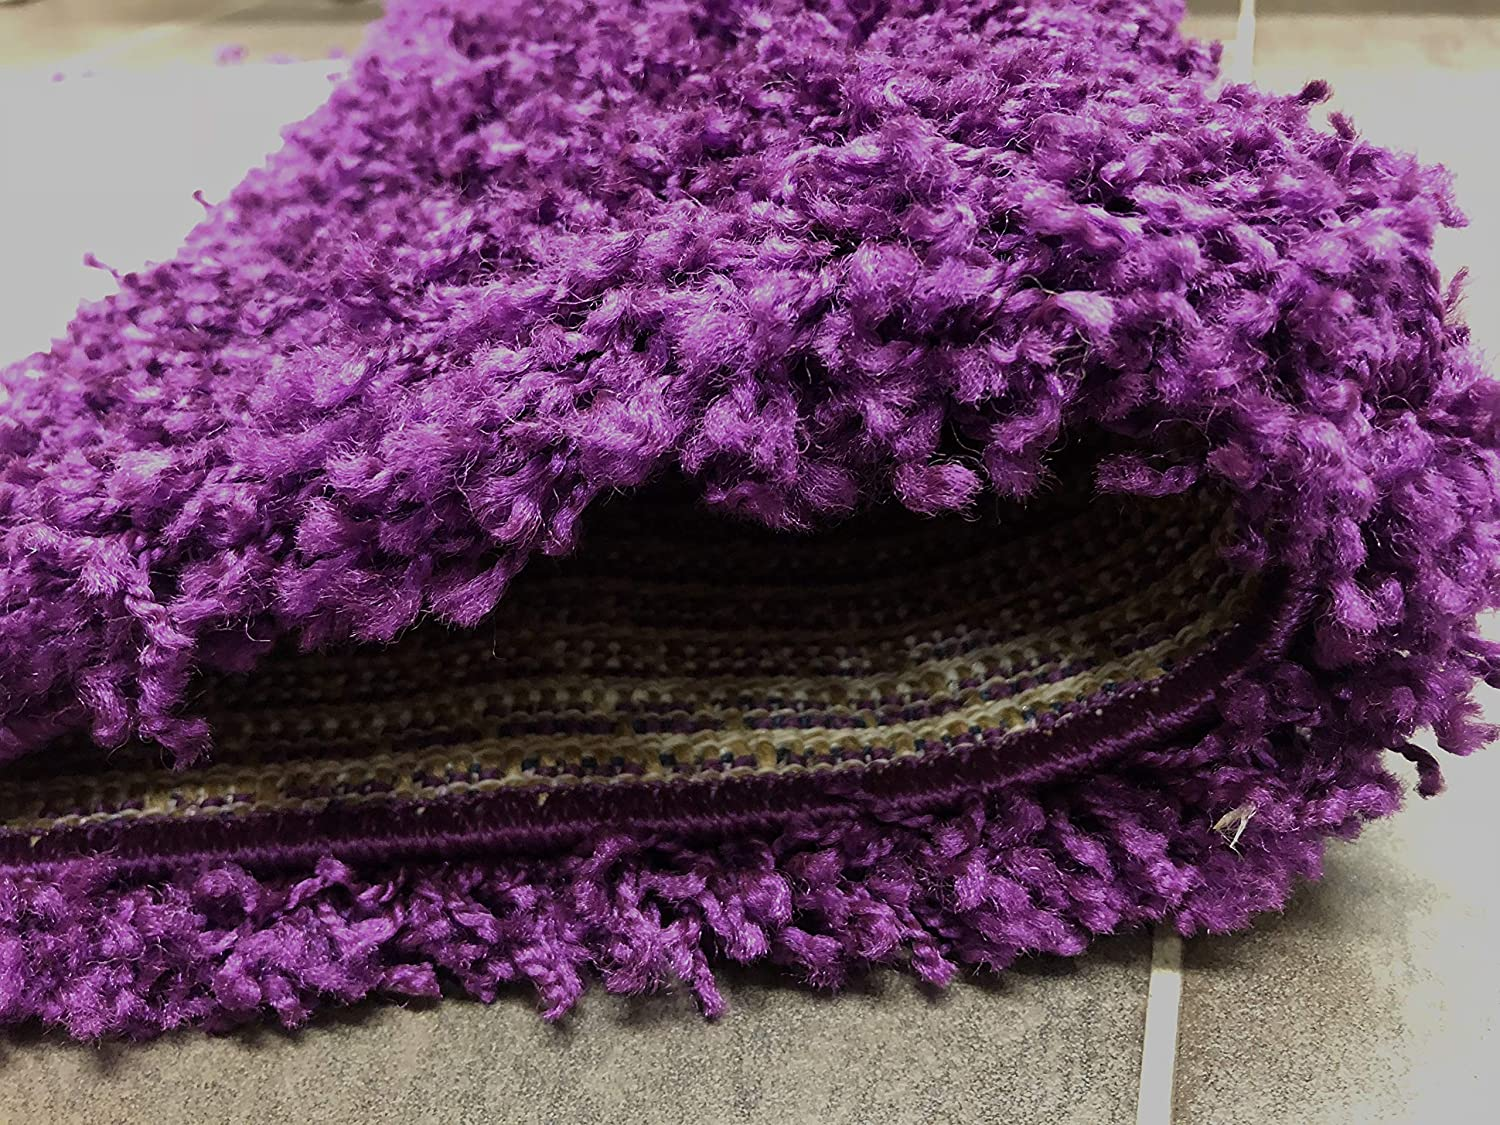 50cm x 80cm 1ft 8 x 2ft 7 SuperRugStore Shaggy Thick Modern Luxurious Purple Rug High Pile Long Pile Soft Pile Anti Shedding Available in 9 Sizes